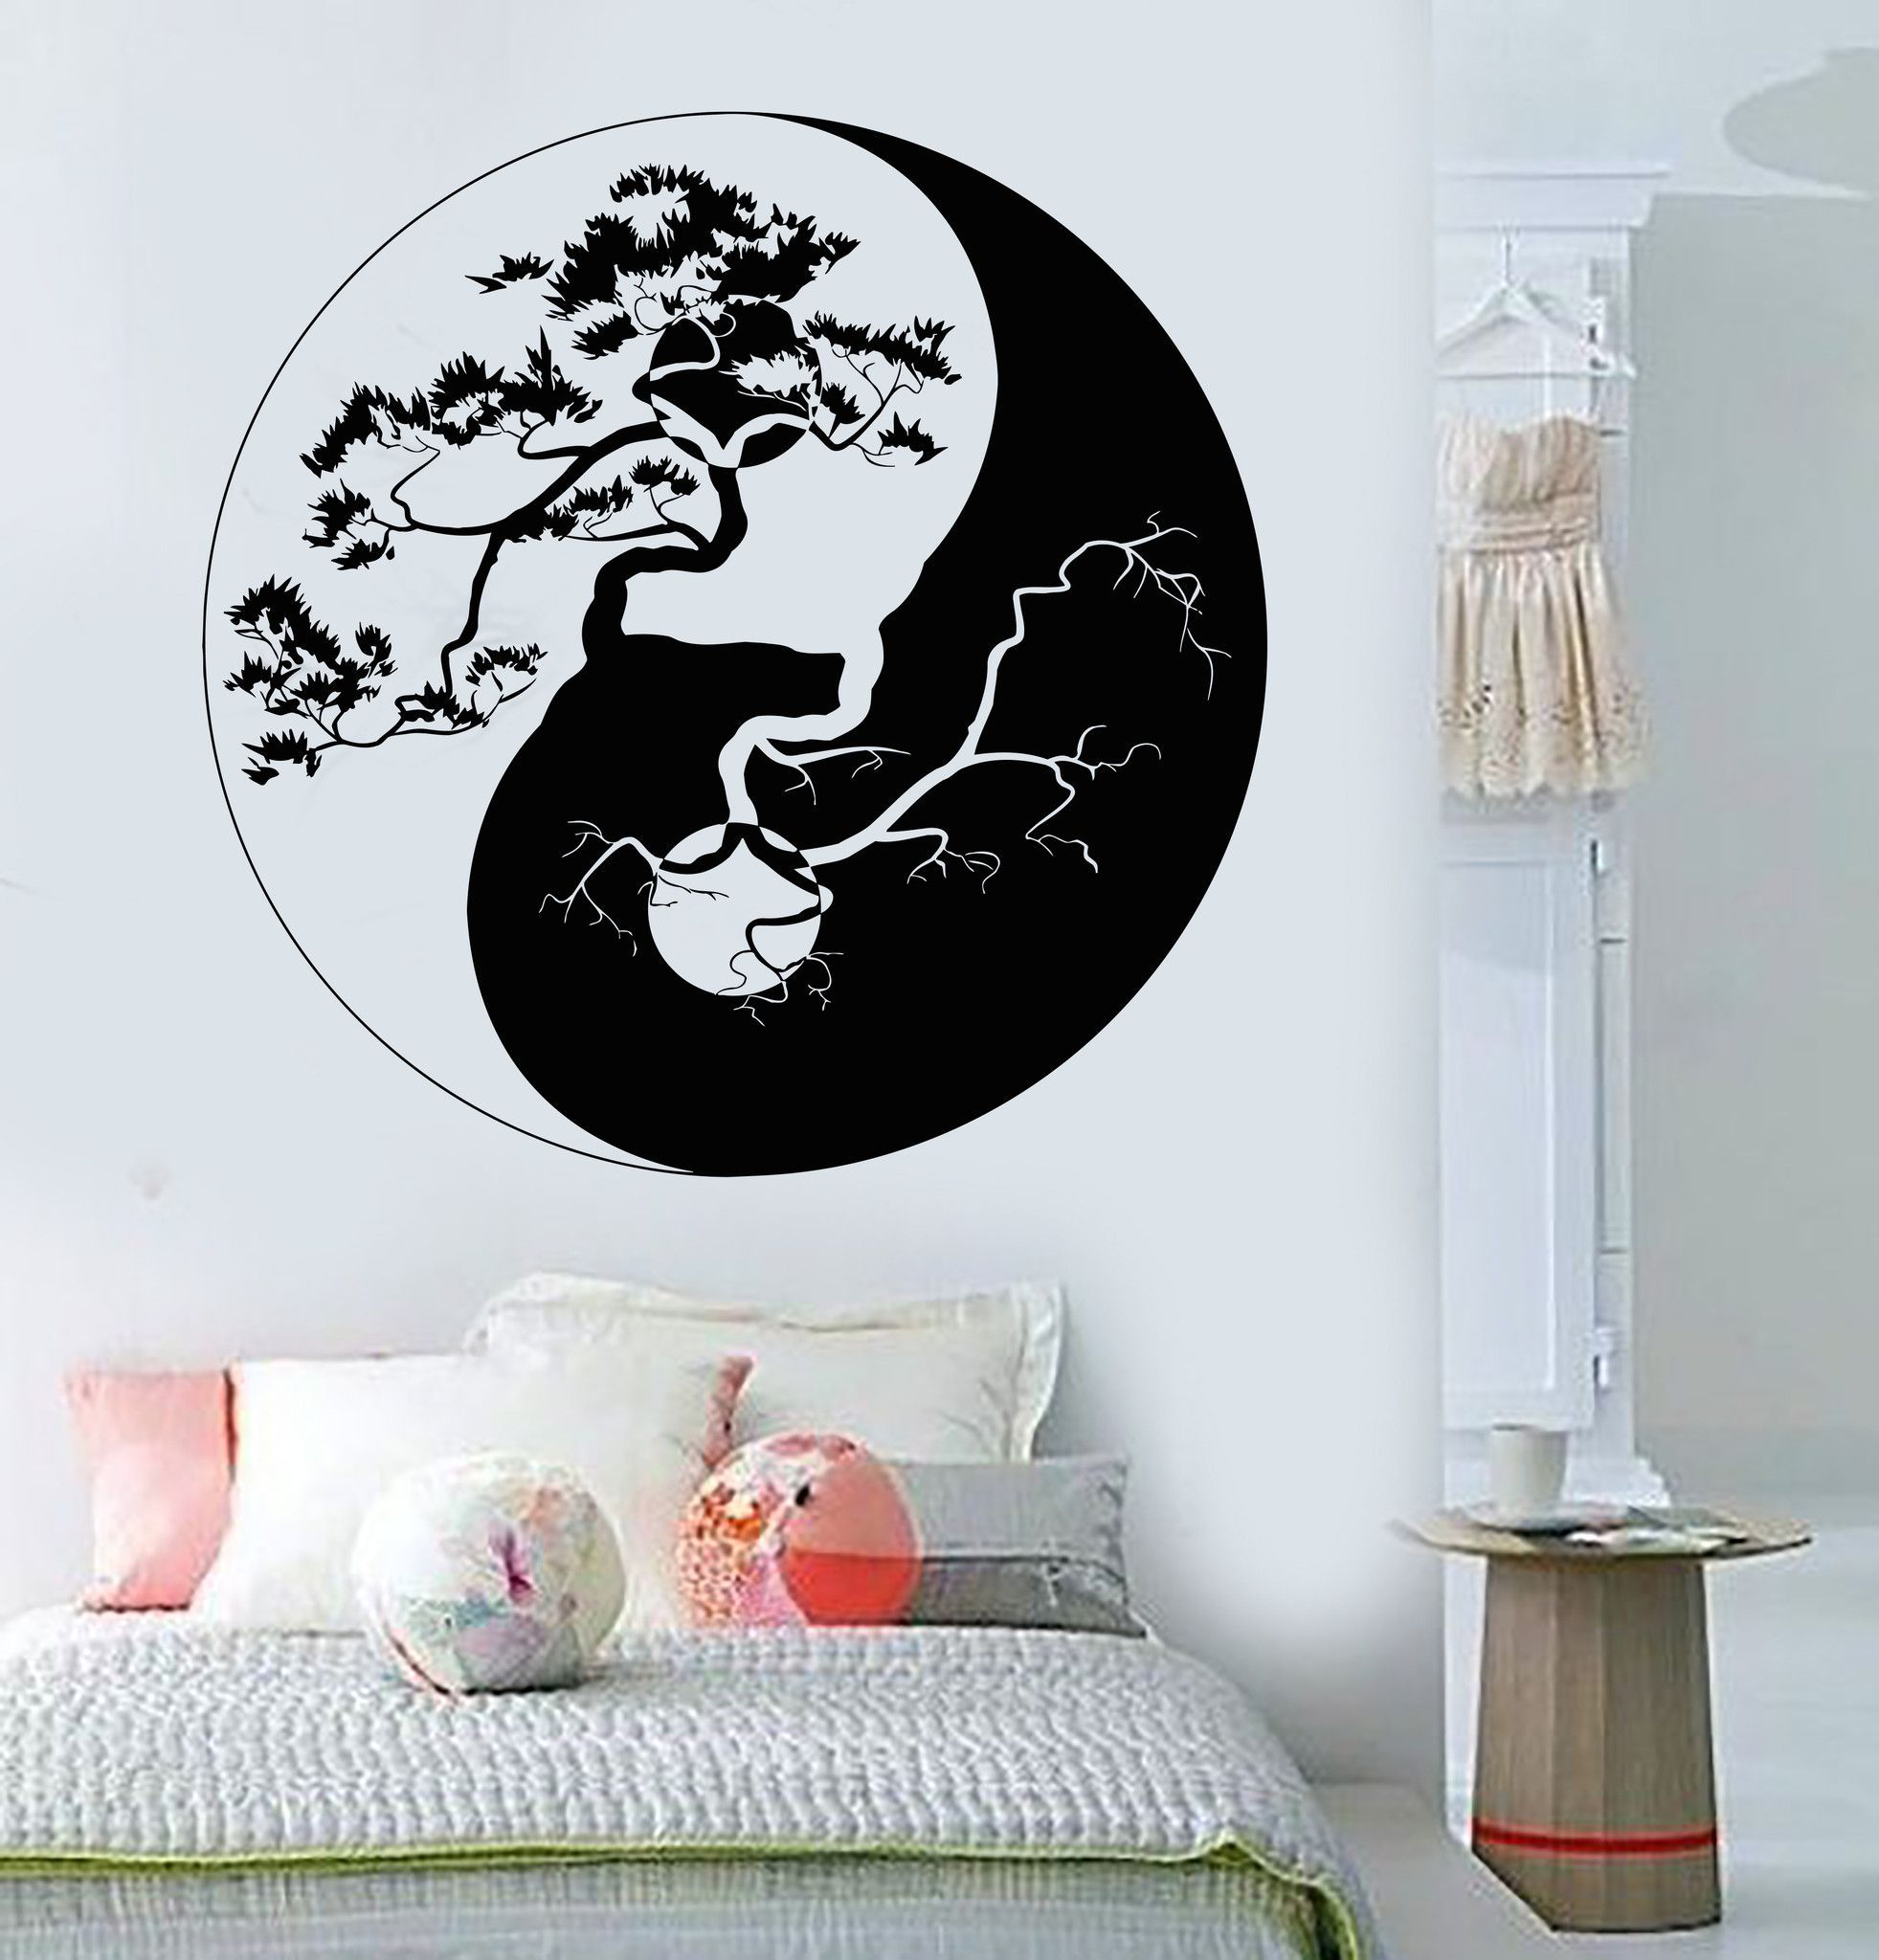 Décoration Murale Asiatique Vinyl Wall Decal Yin Yang Tree Zen Asian Style Stickers